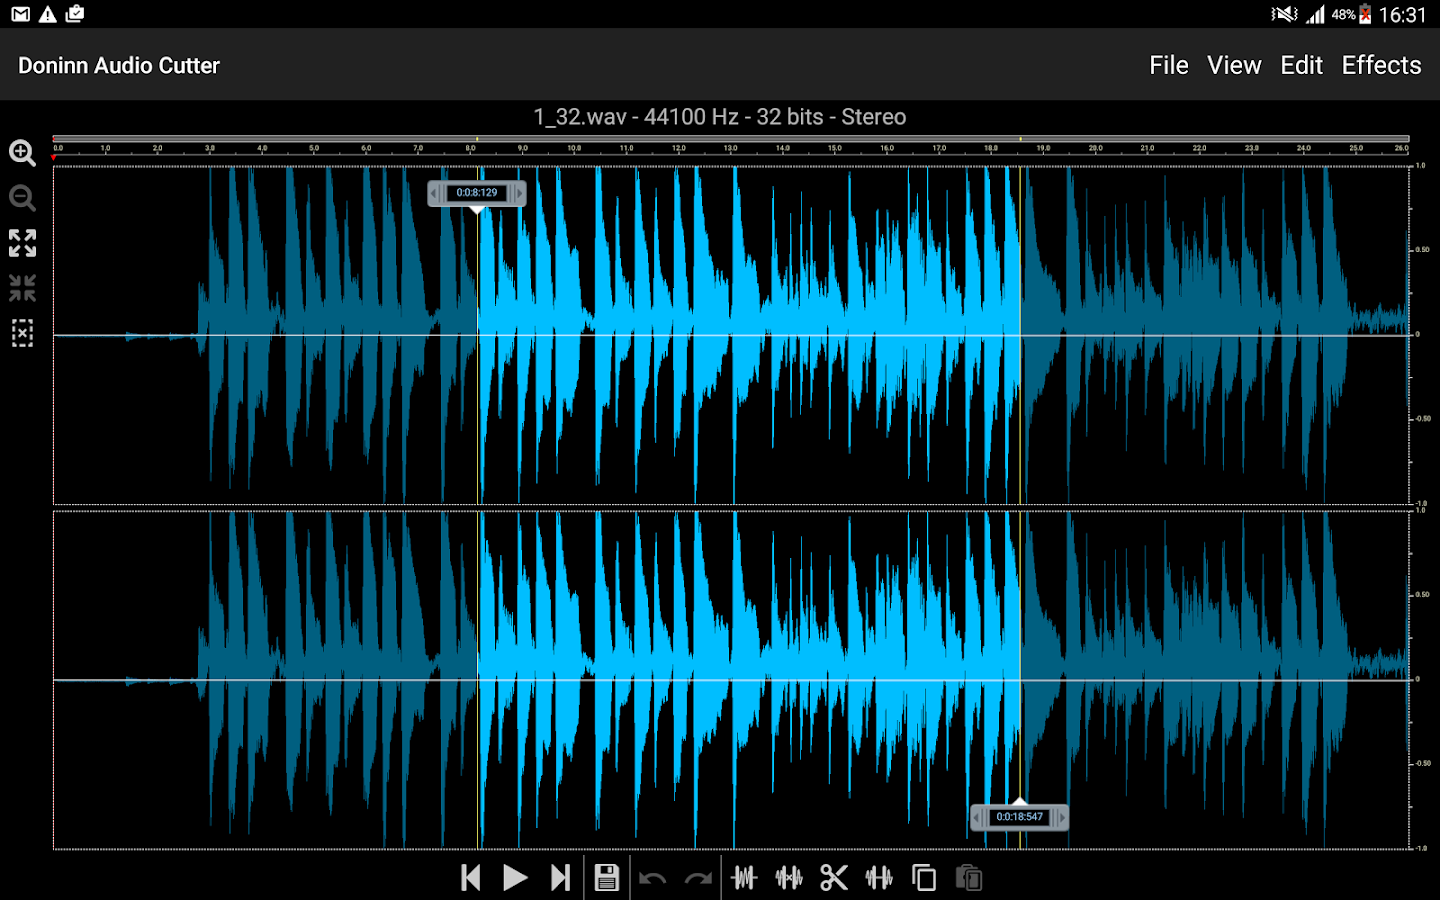 Doninn Audio Cutter Free Screenshot 6